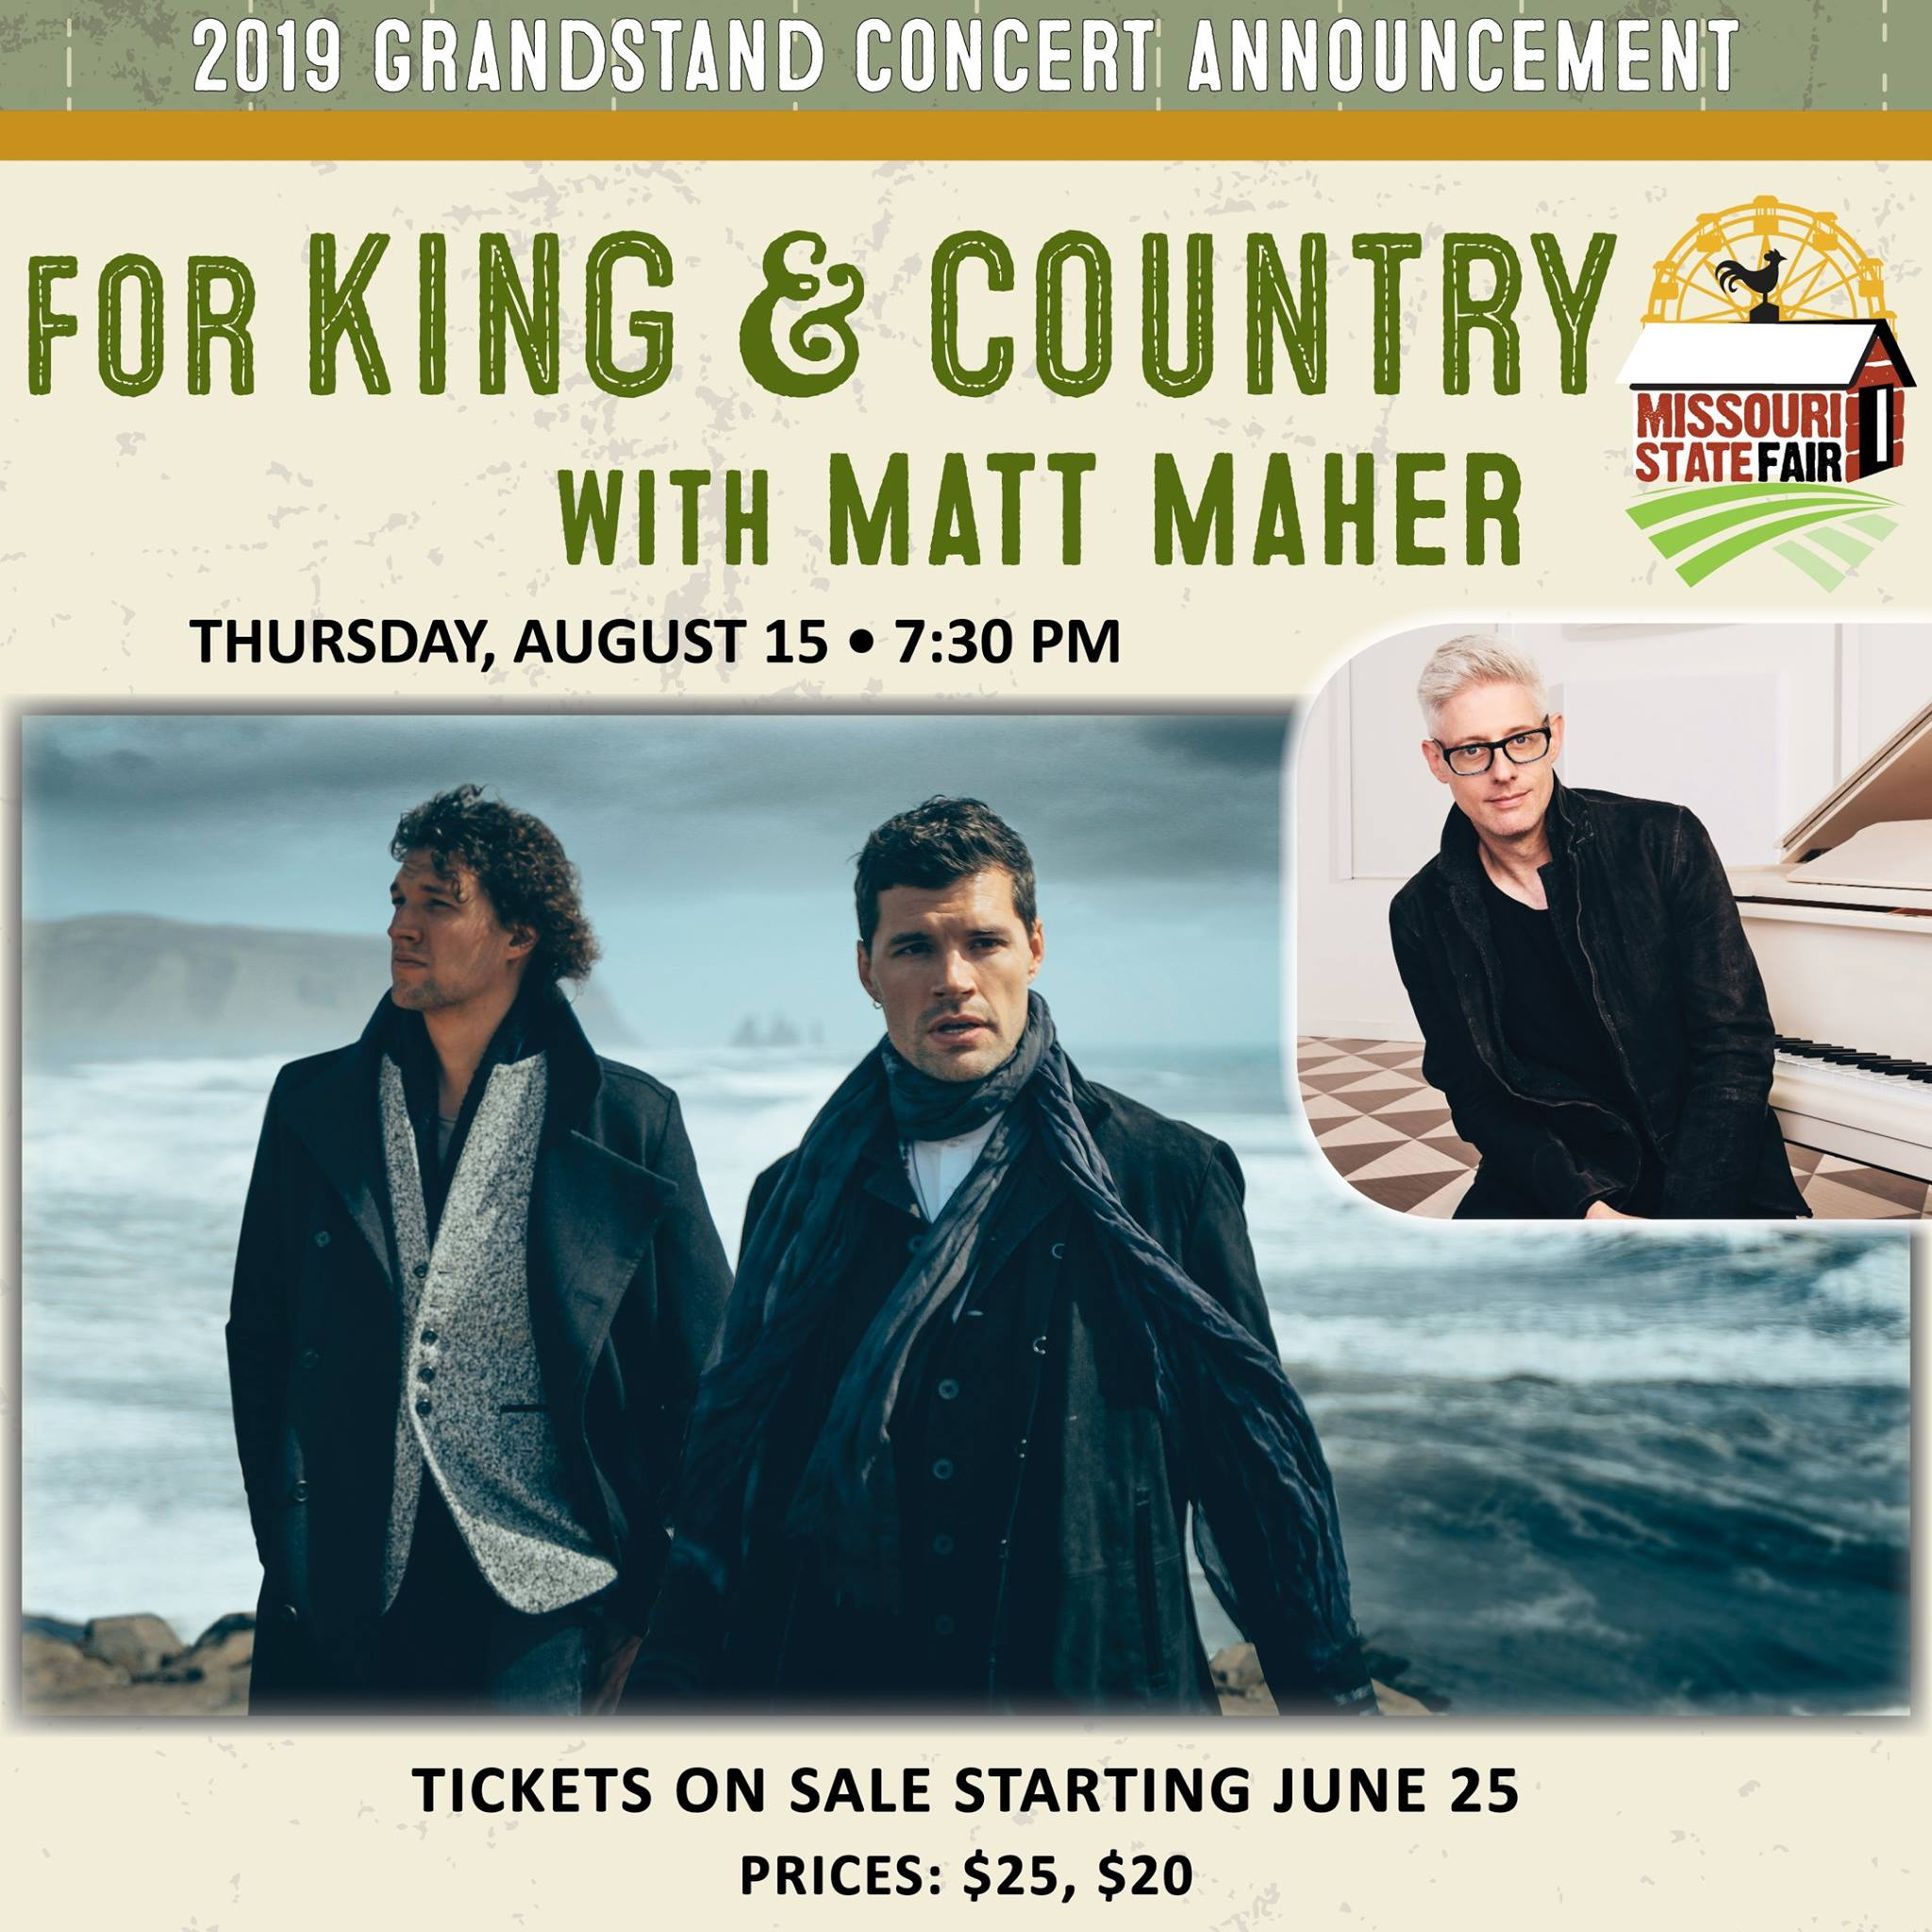 Missouri State Fair adds For King & Country, Matt Maher